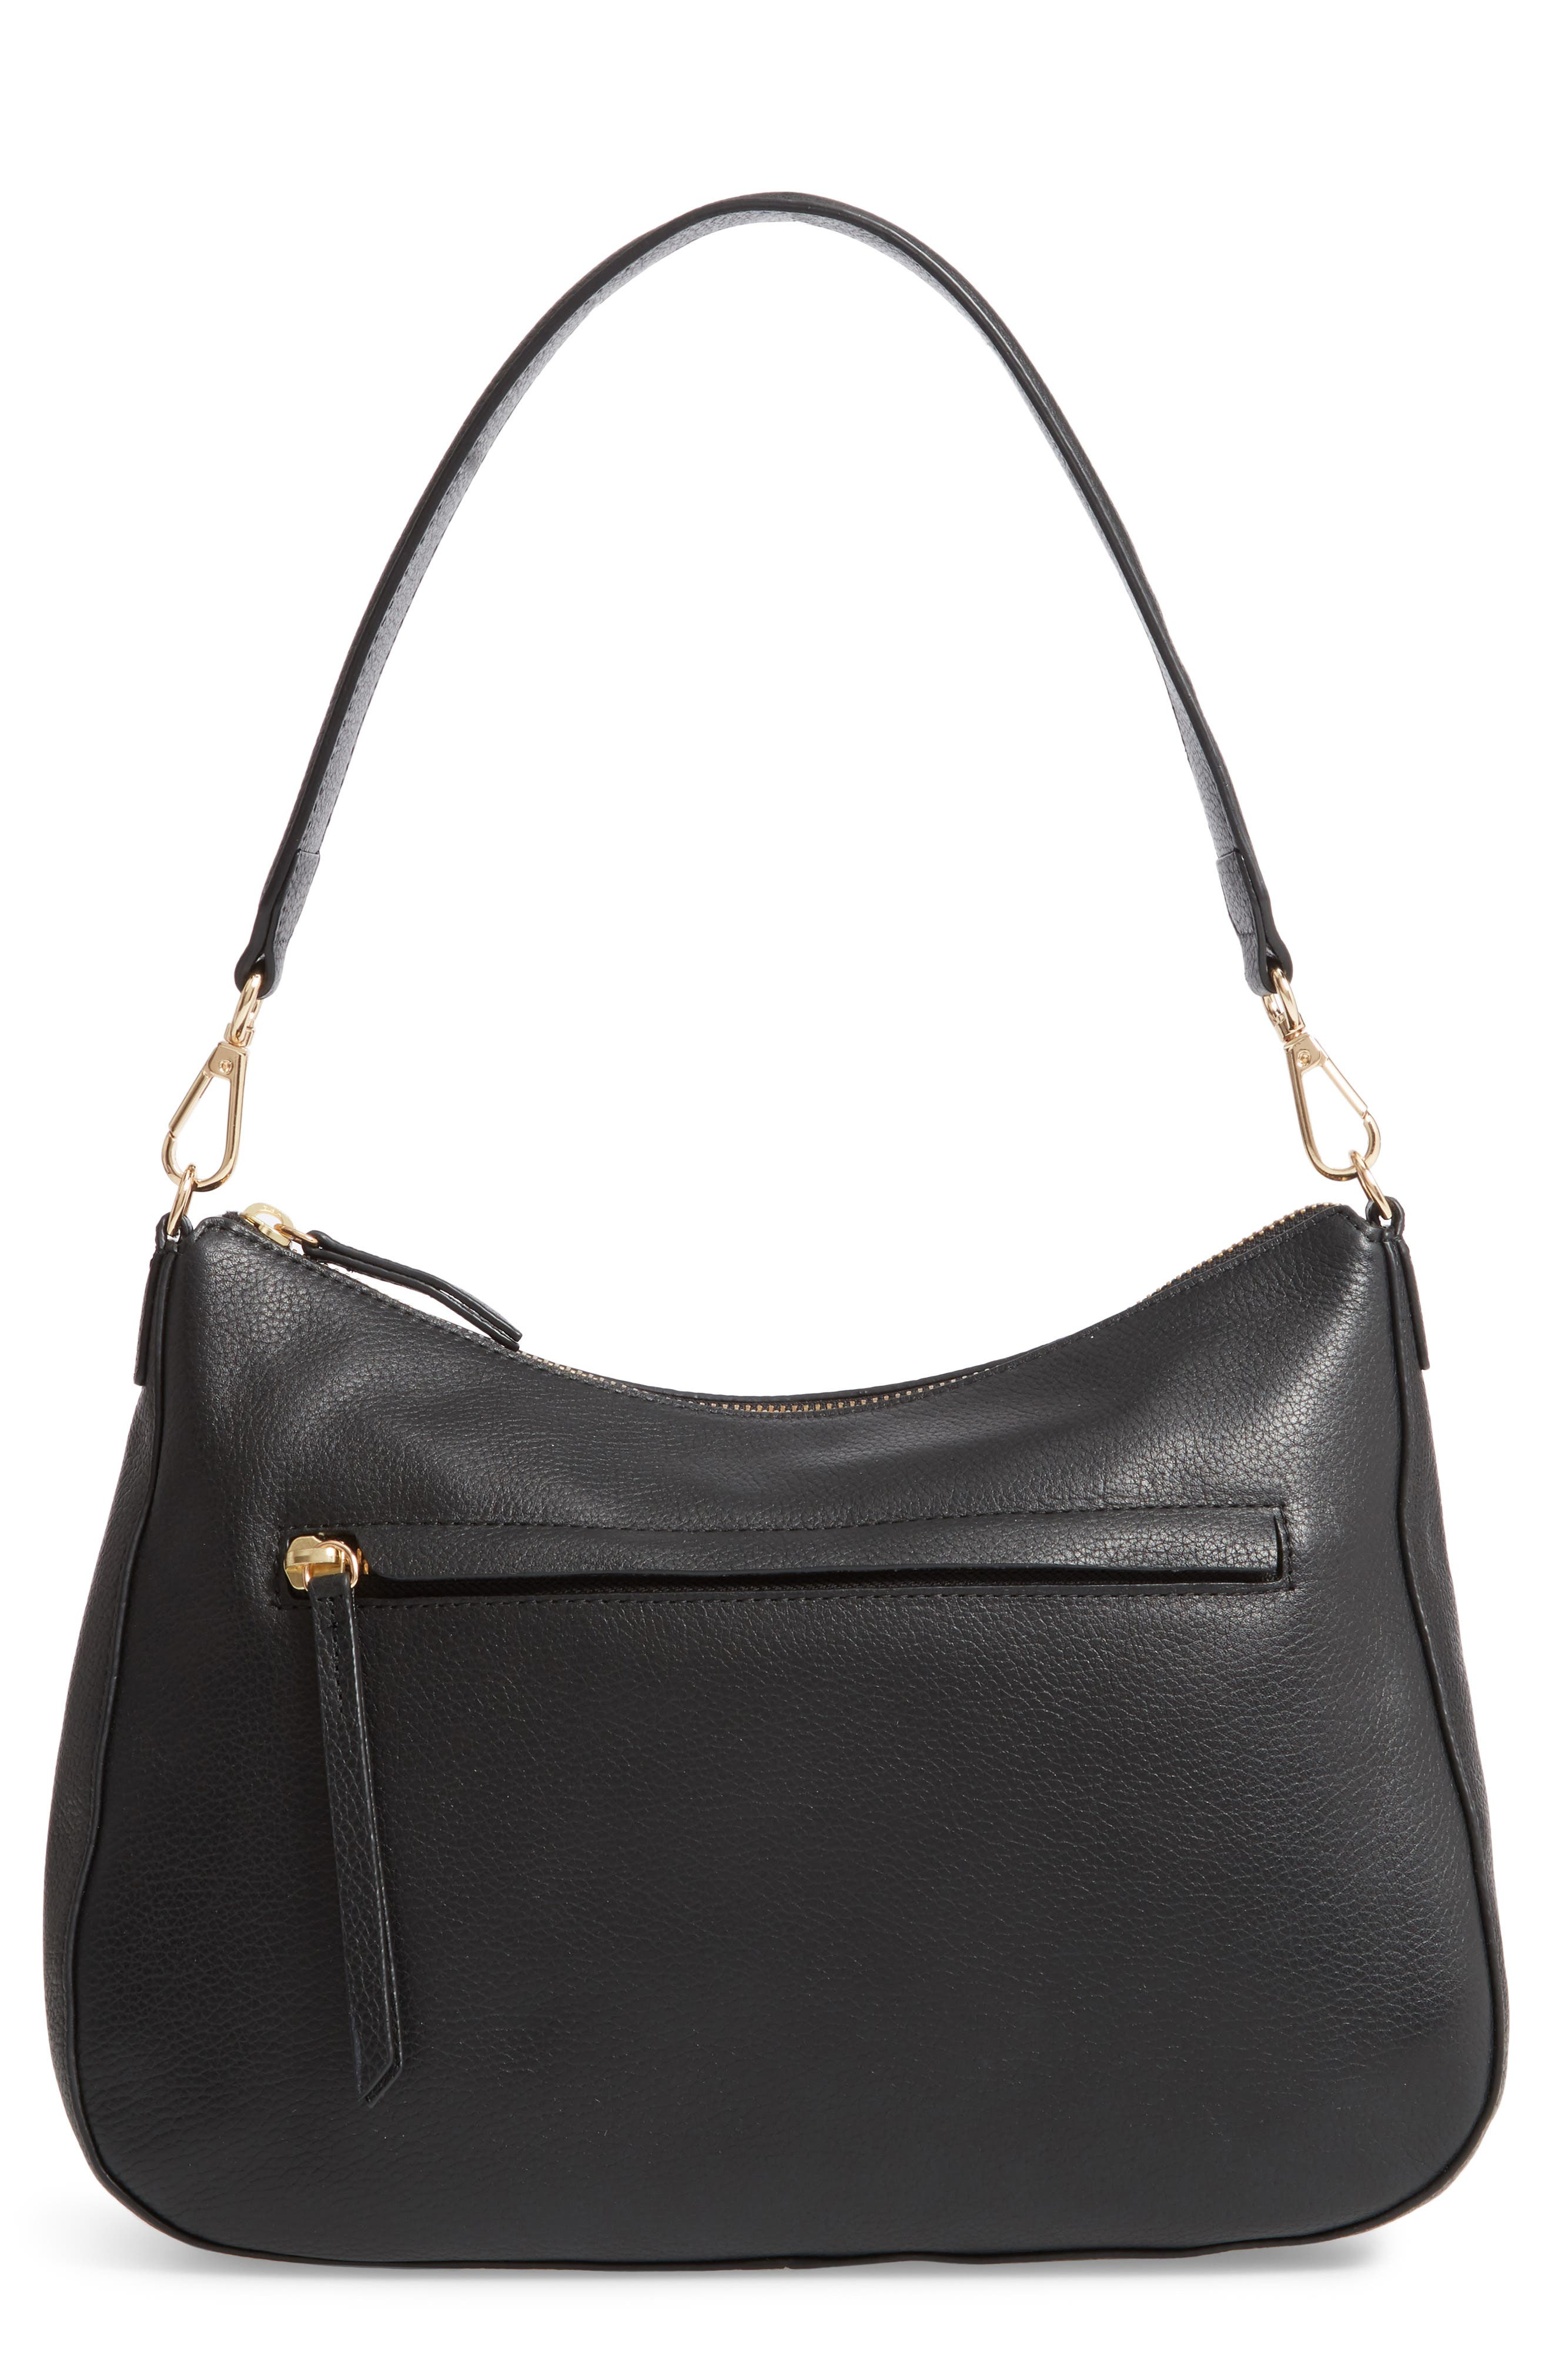 NORDSTROM, Finn Convertible Leather Hobo, Main thumbnail 1, color, BLACK